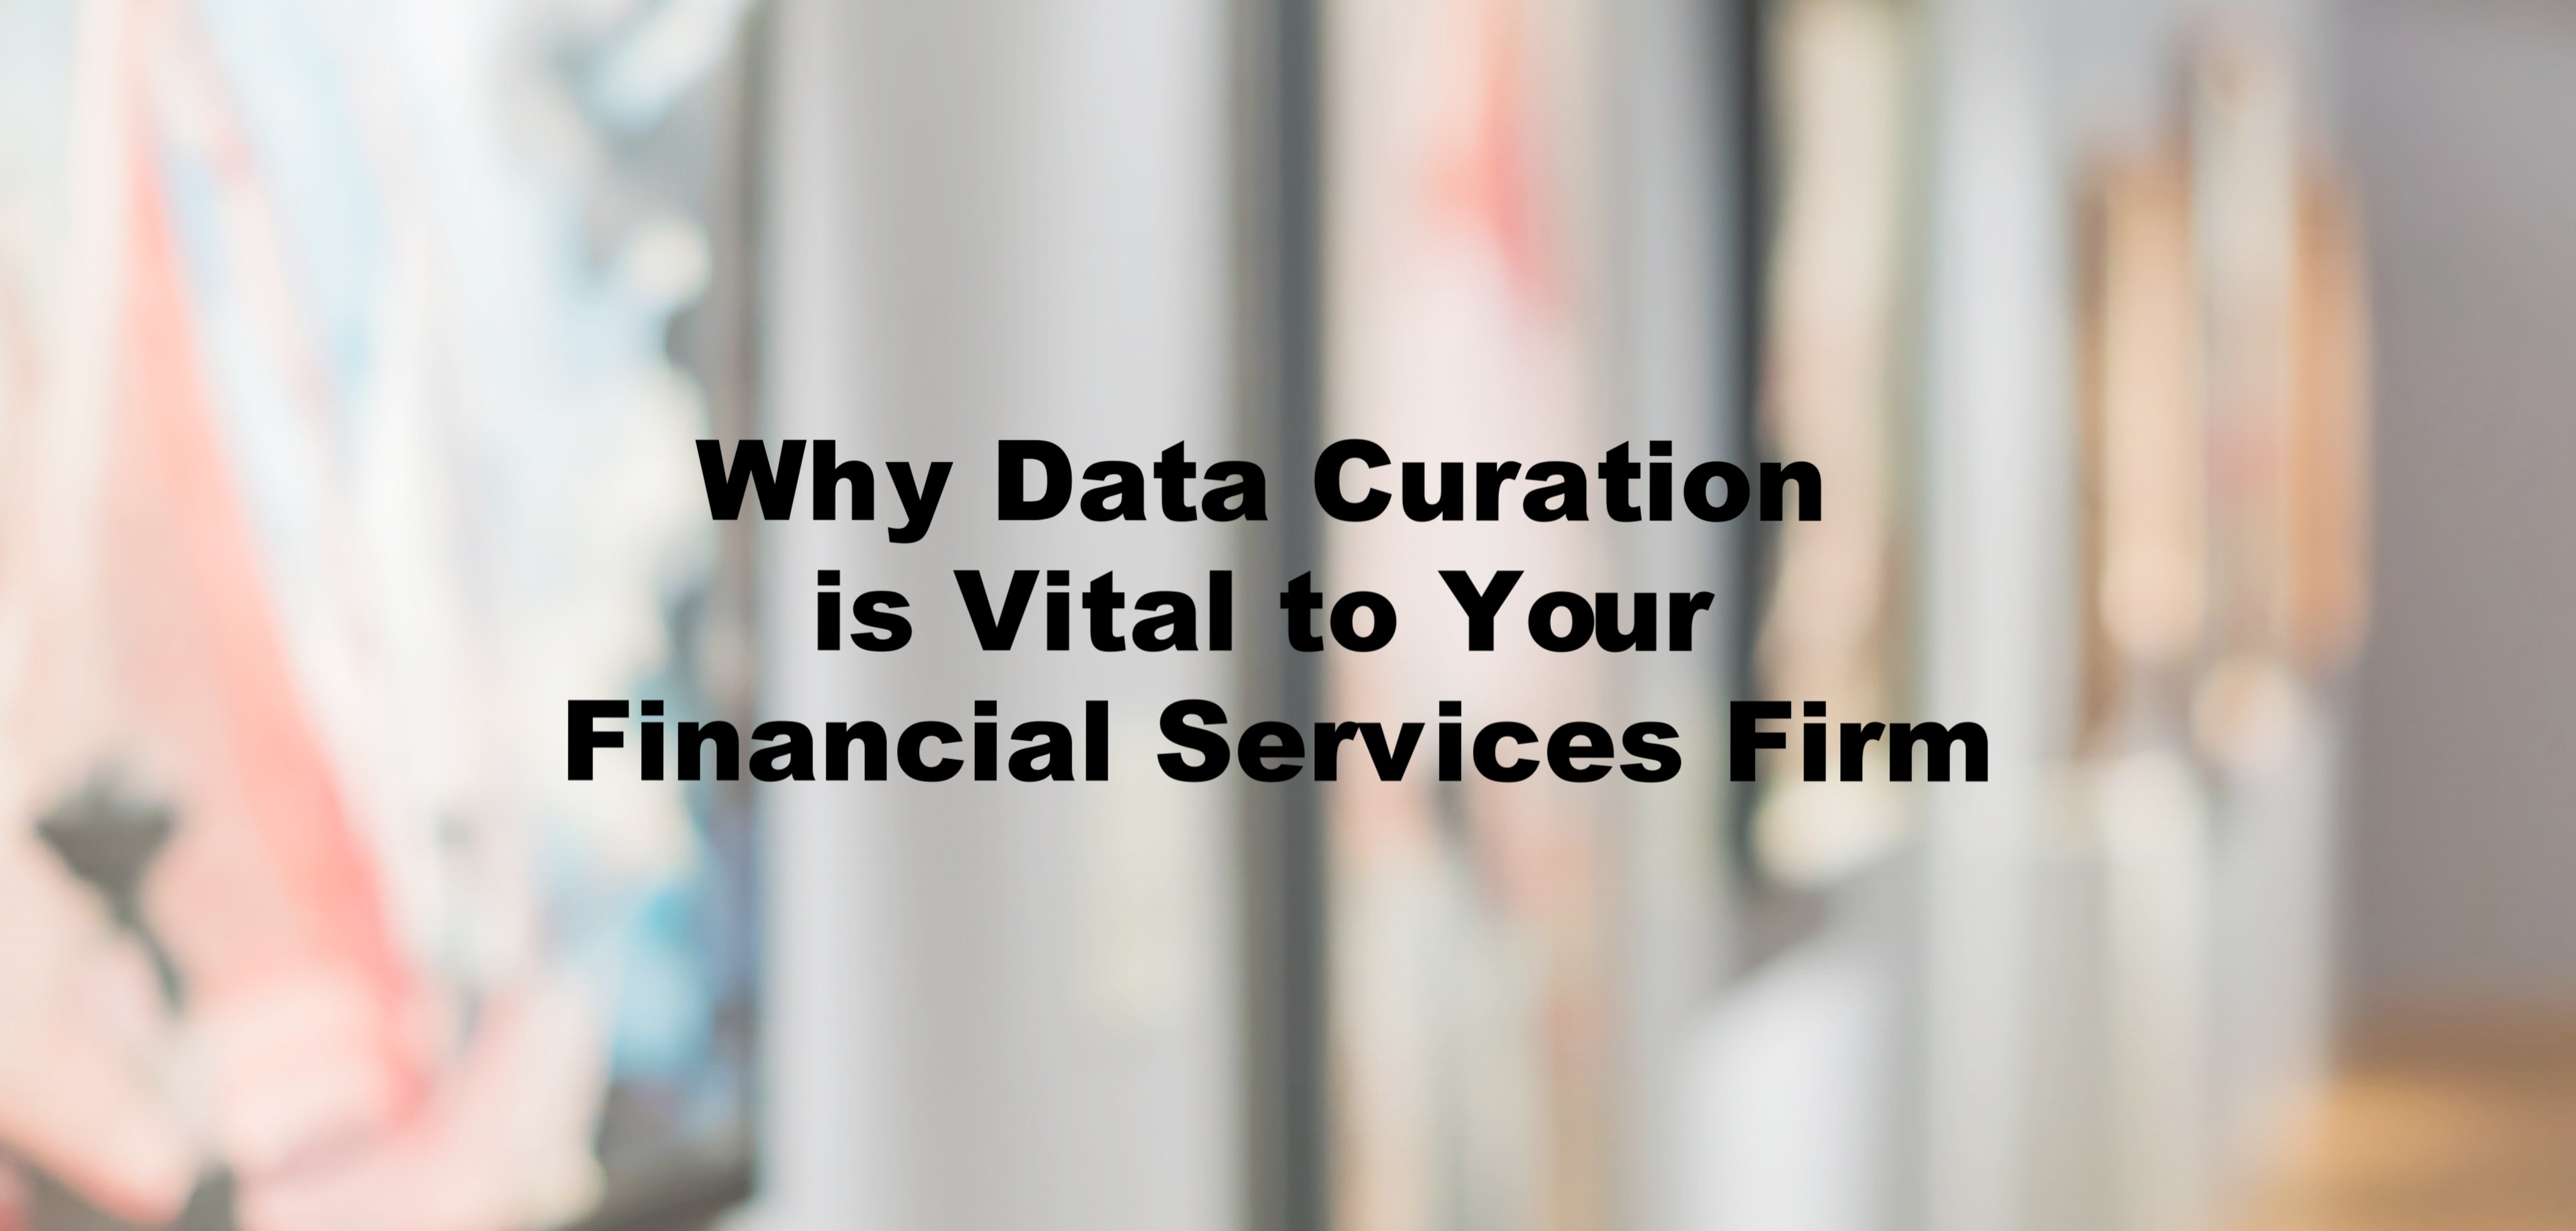 Why Data Curation is Vital to Your Financial Services Firm